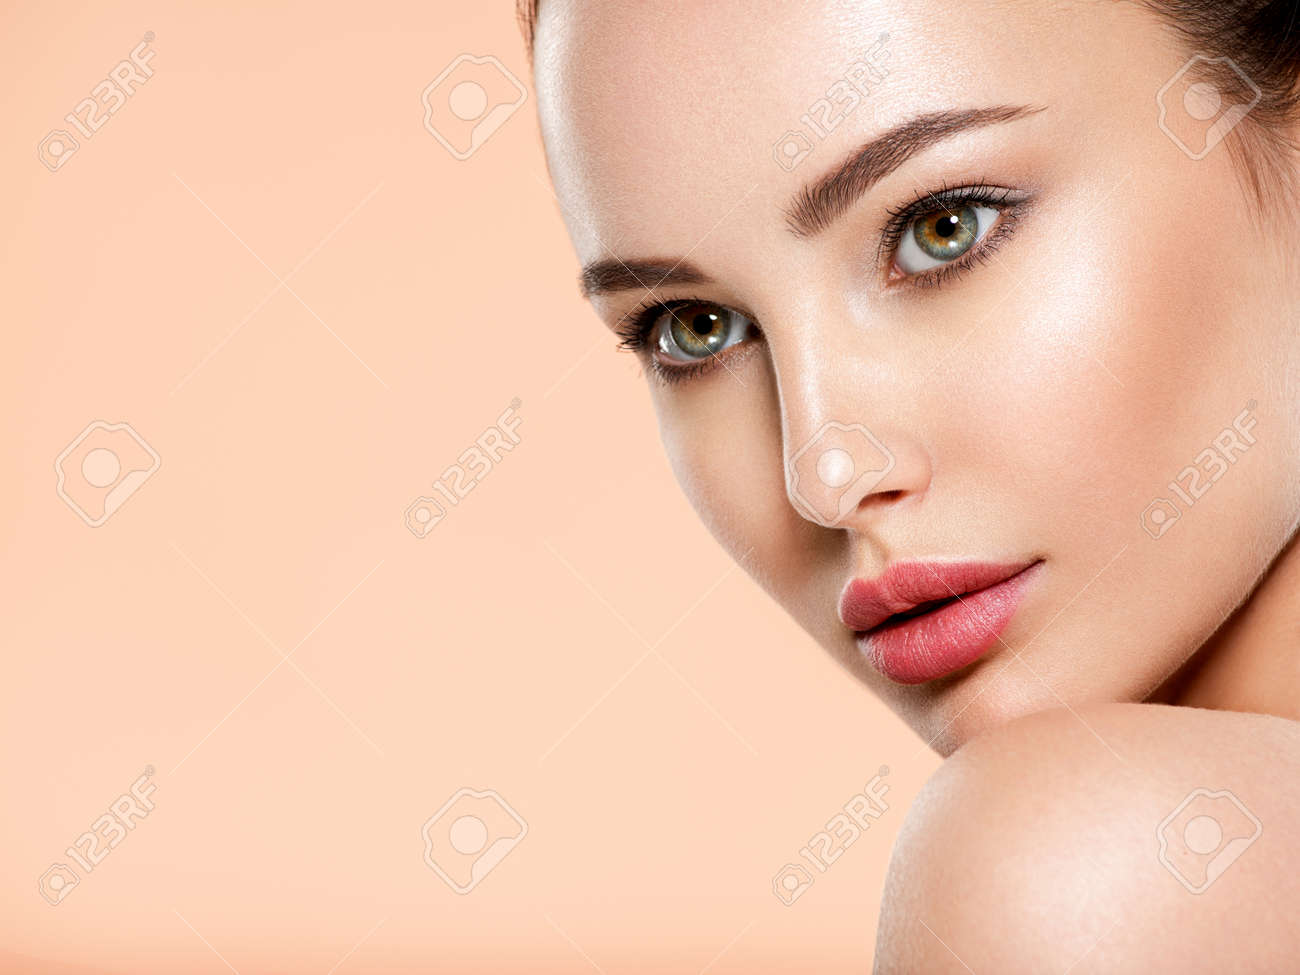 Beautiful face of young woman with health fresh skin. Portrait of beautiful brunette woman with clean face. Closeup face of young adult woman with clean fresh skin. Skin care. - 166421677